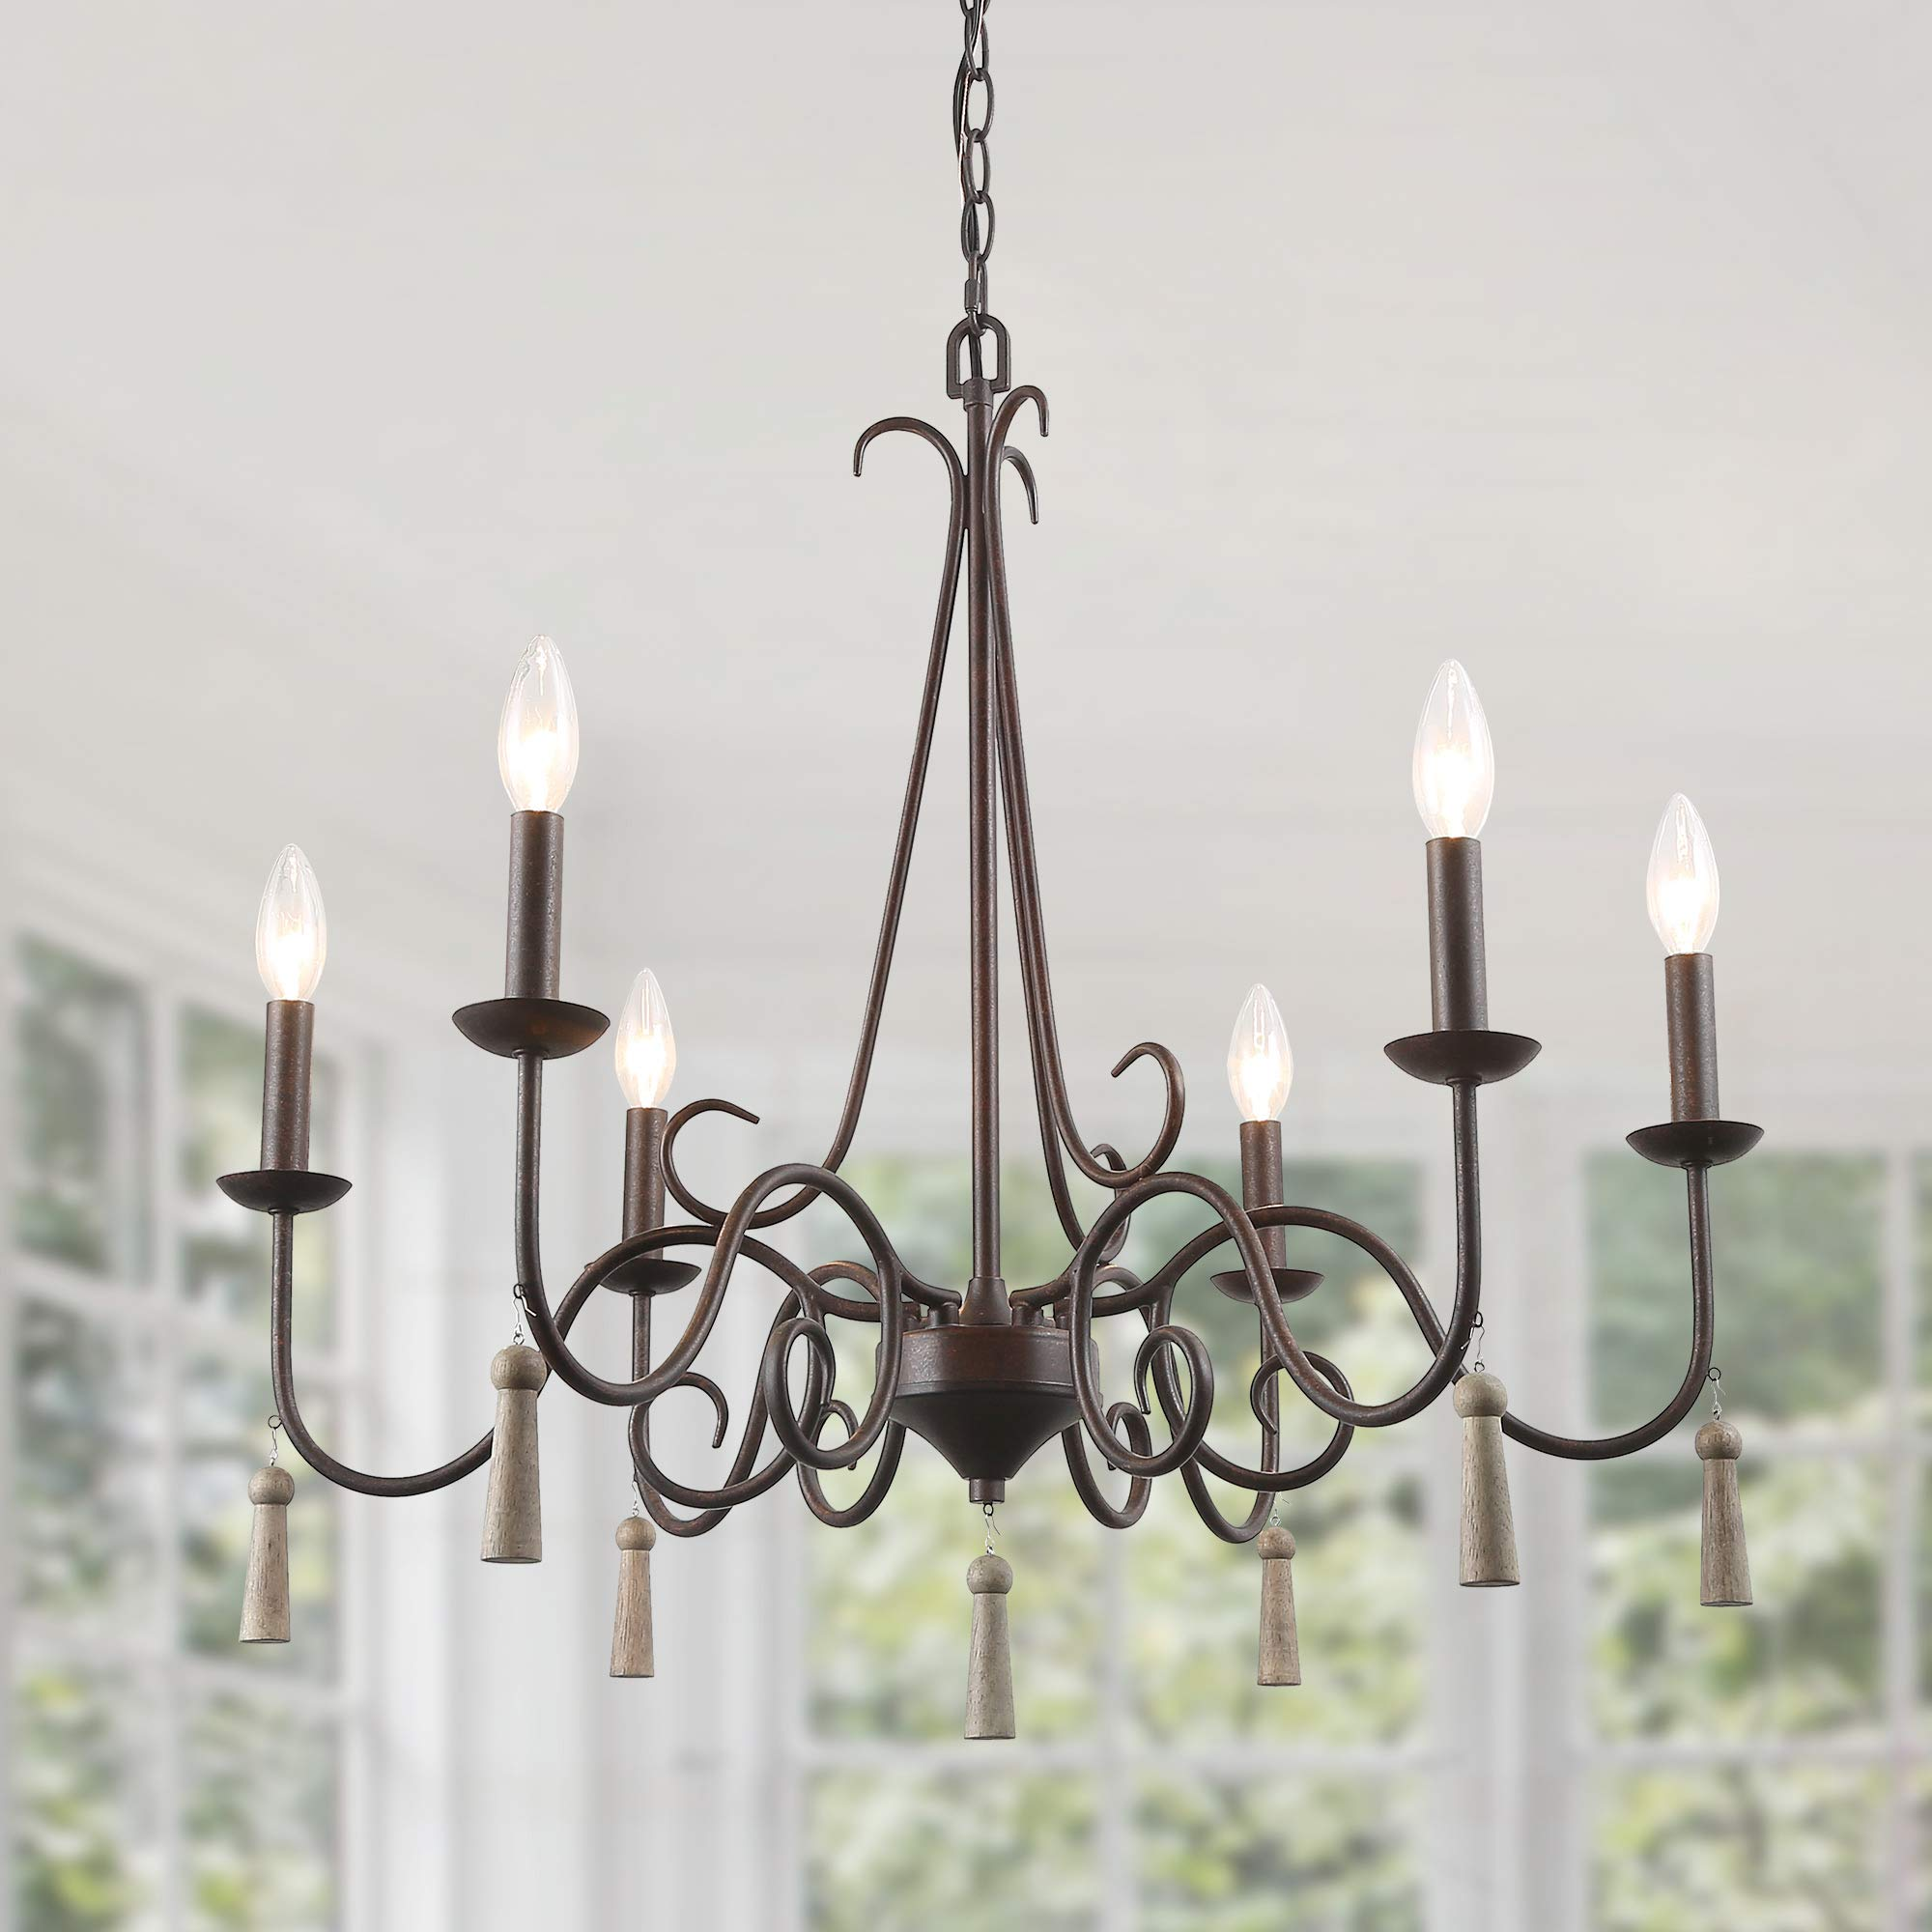 "LALUZ Rustic French Country Chandelier, 6 Lights 26.4"" Farmhouse Chandelier with Wood Droplets"